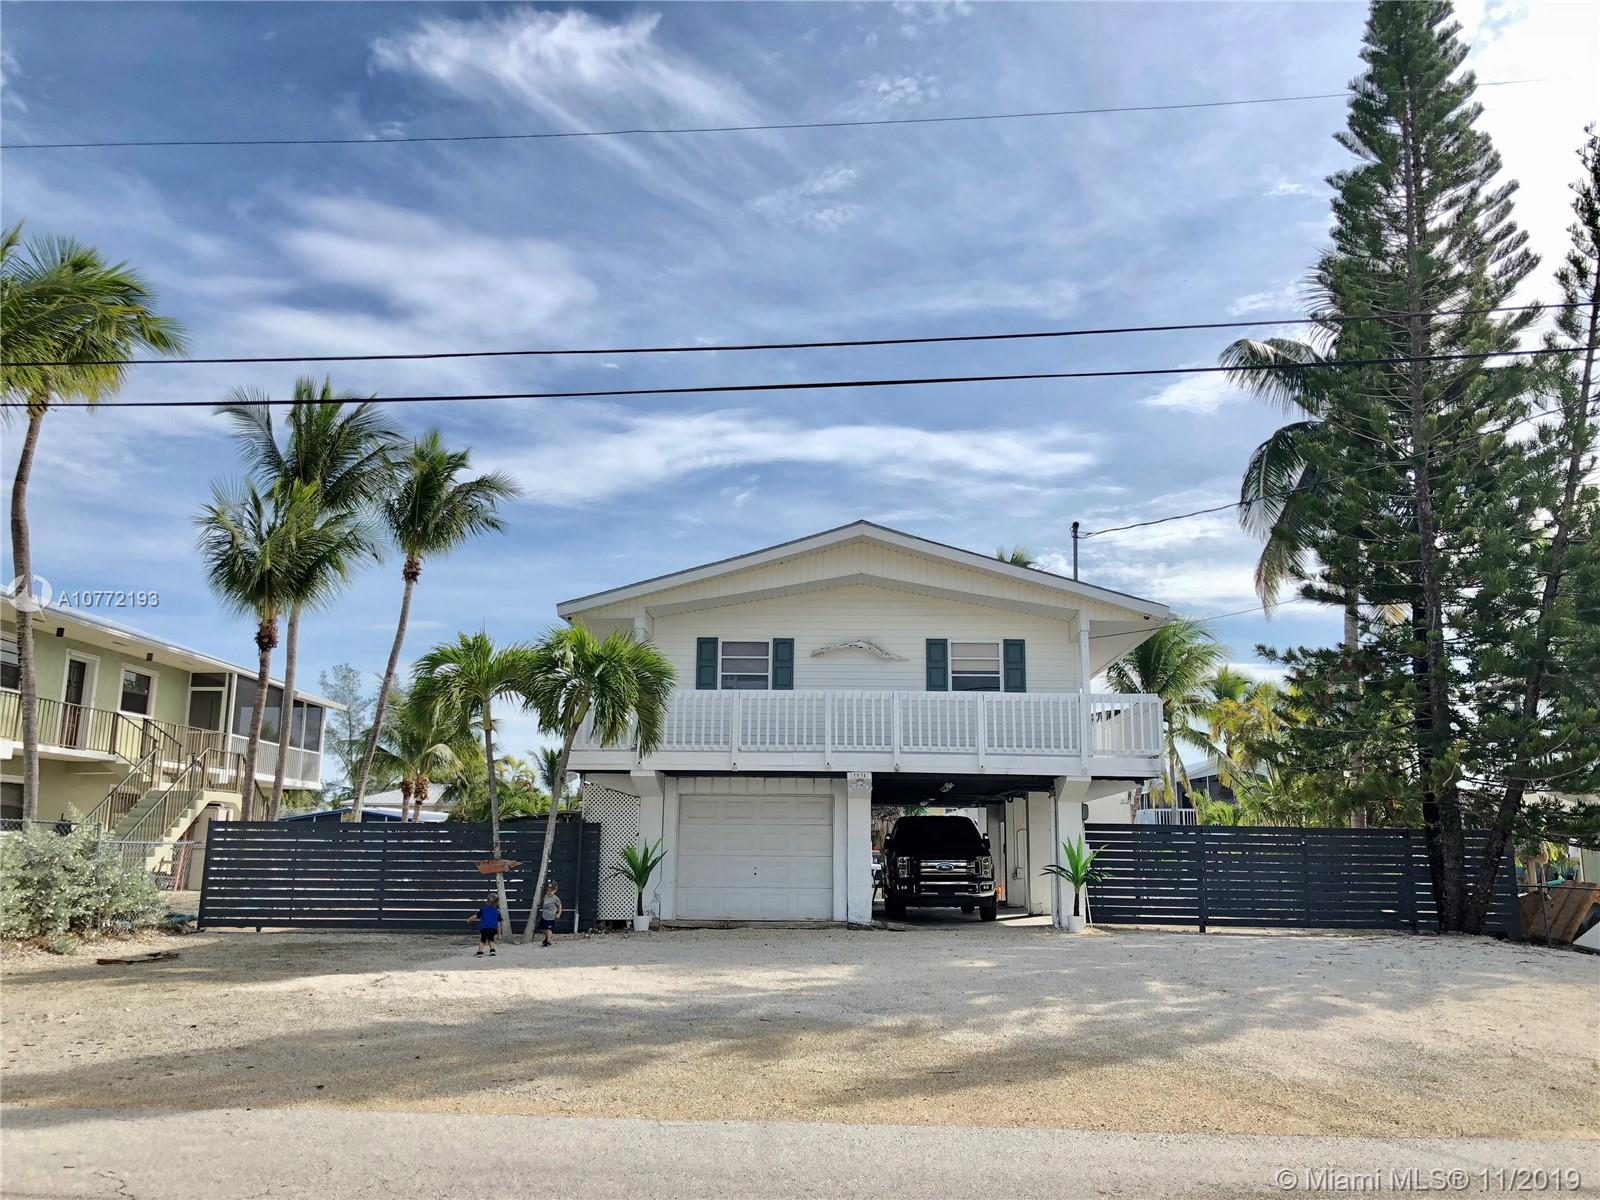 1034 Adams Dr, Other City - In The State Of Flo, FL 33037 - Other City - In The State Of Flo, FL real estate listing